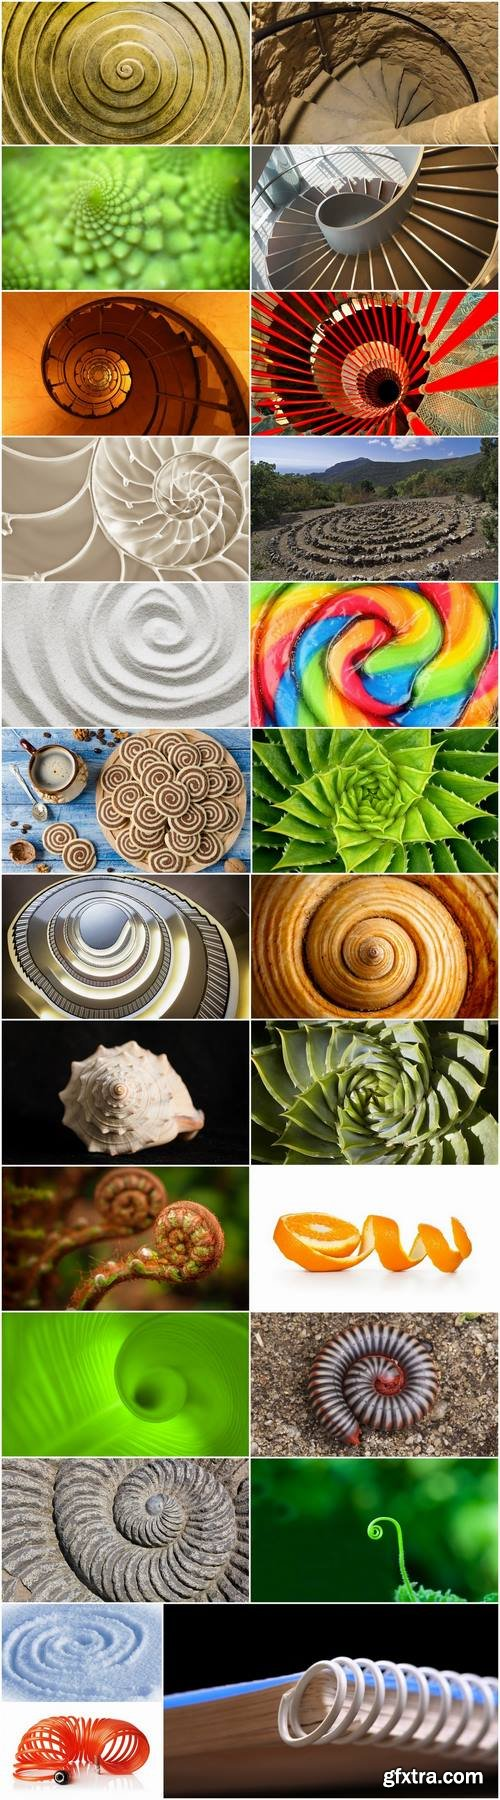 Conceptual illustration spiral staircase shell flower 25 HQ Jpeg